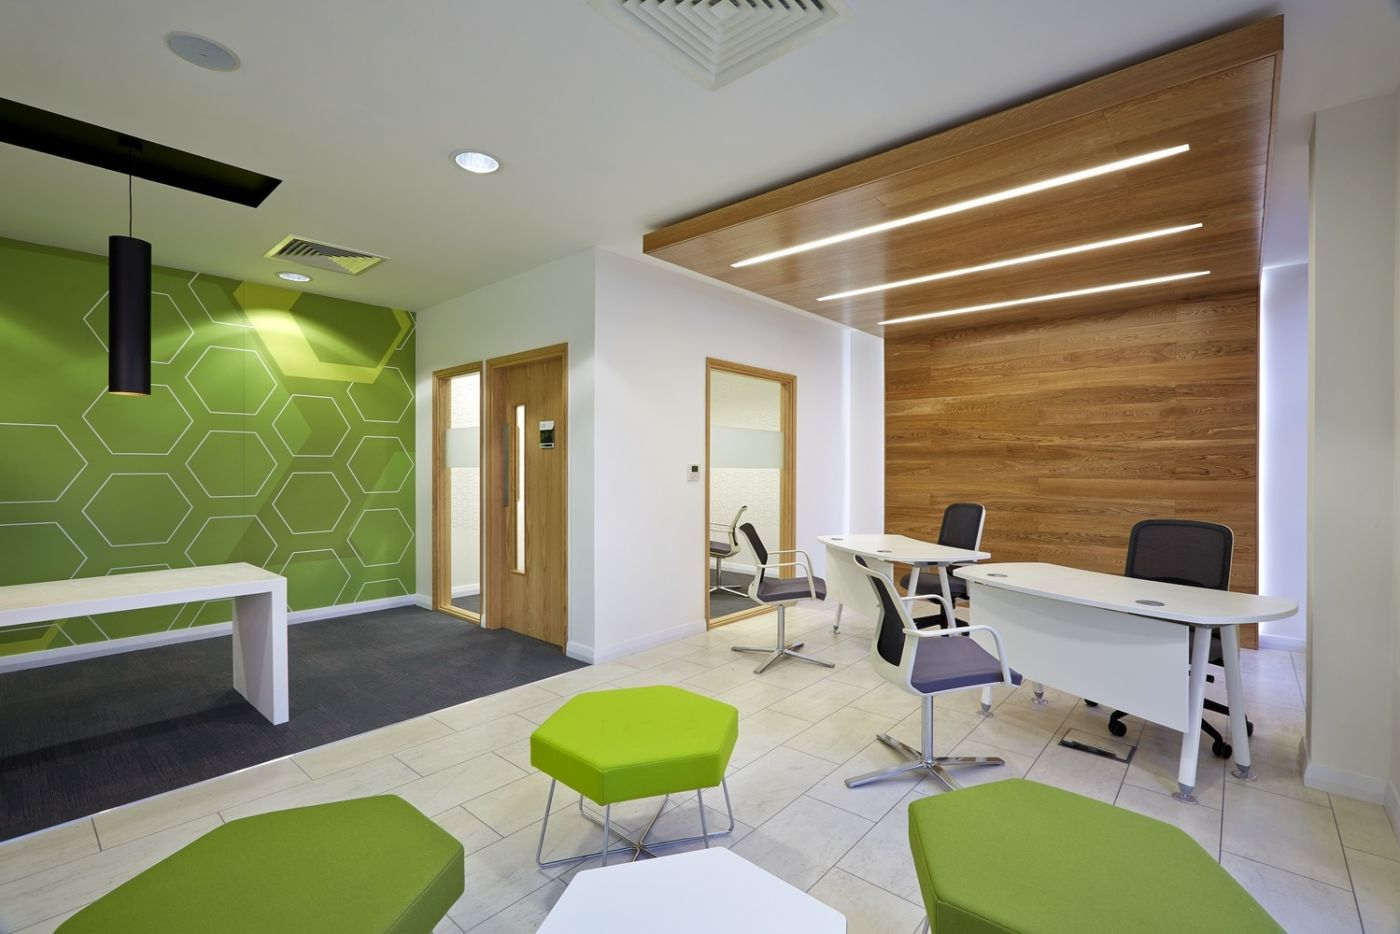 Seating area in designer office reception area